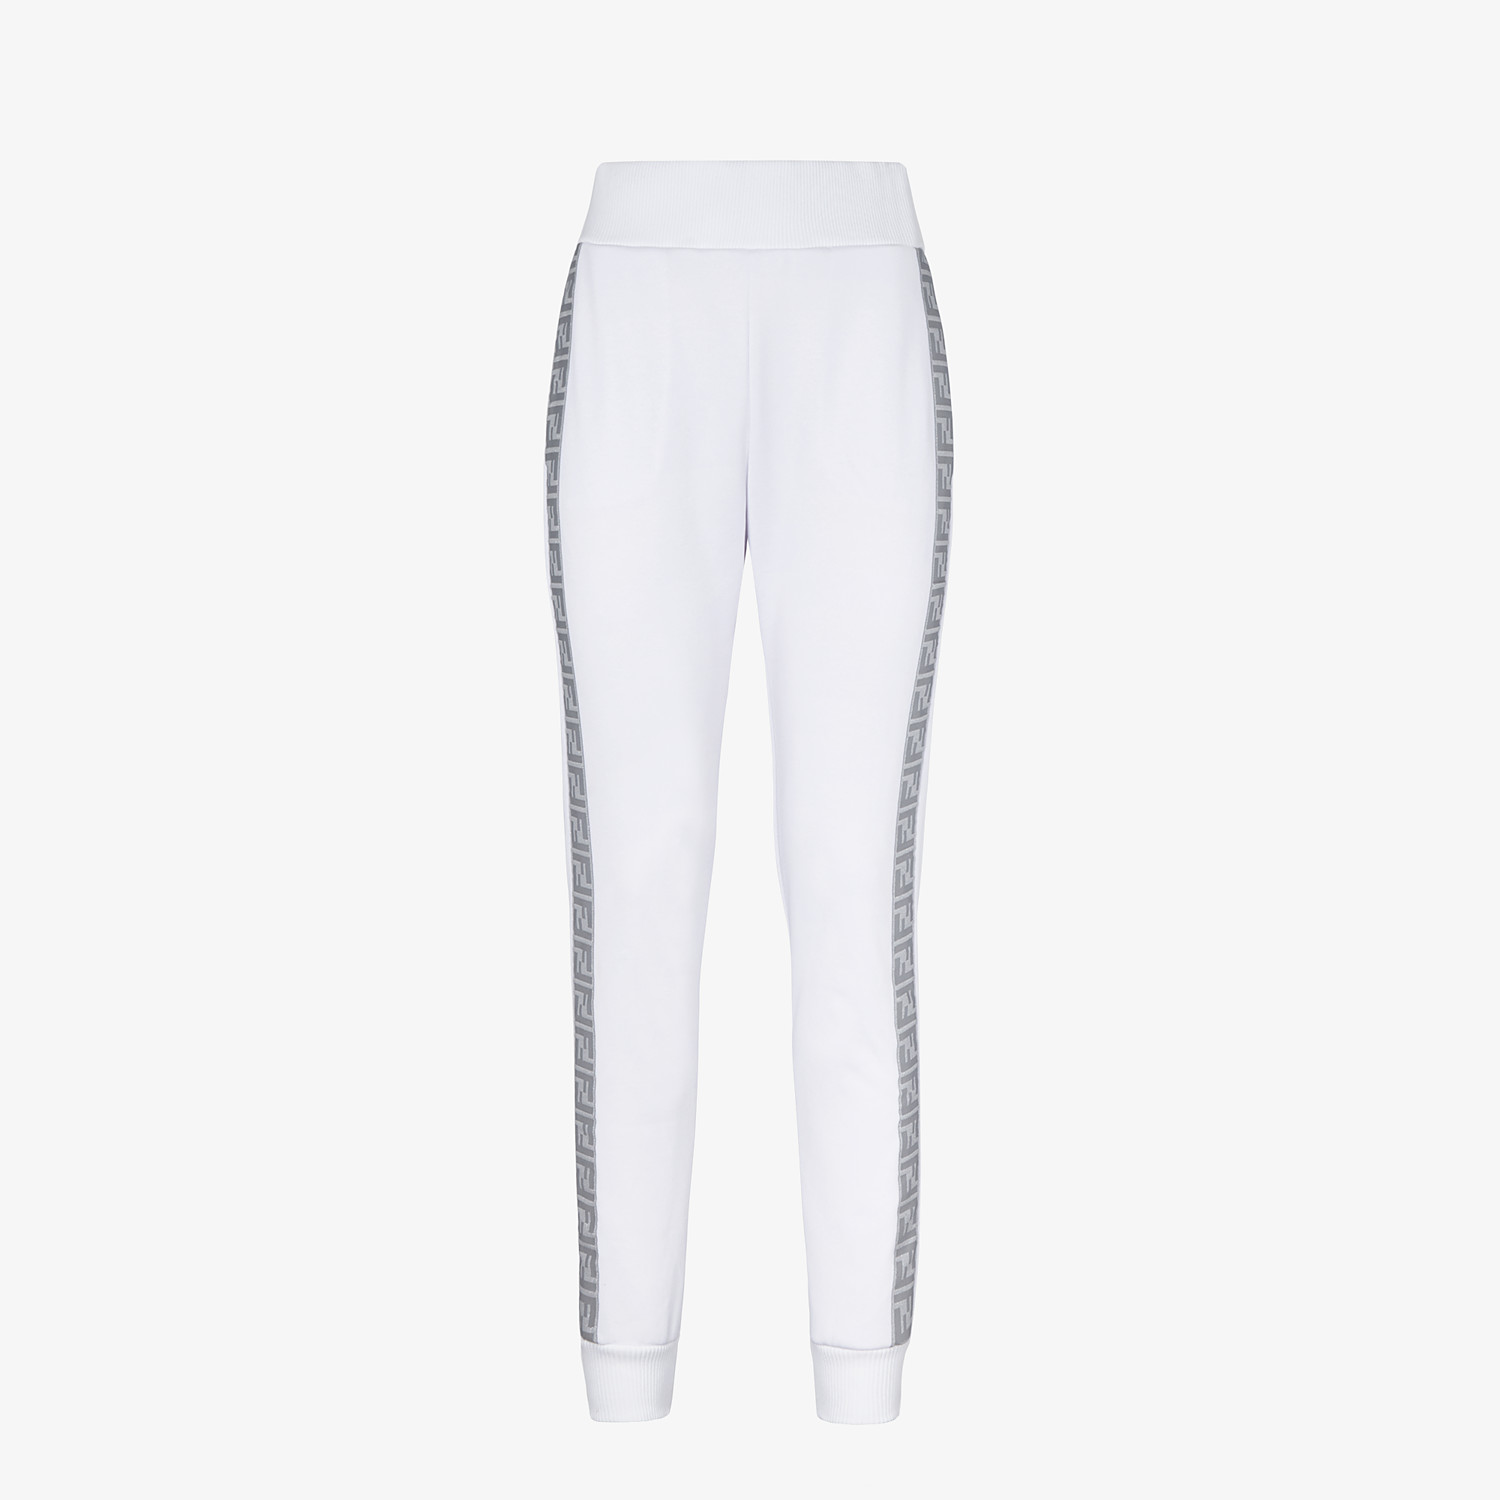 FENDI TROUSERS - White jersey jogging trousers - view 1 detail